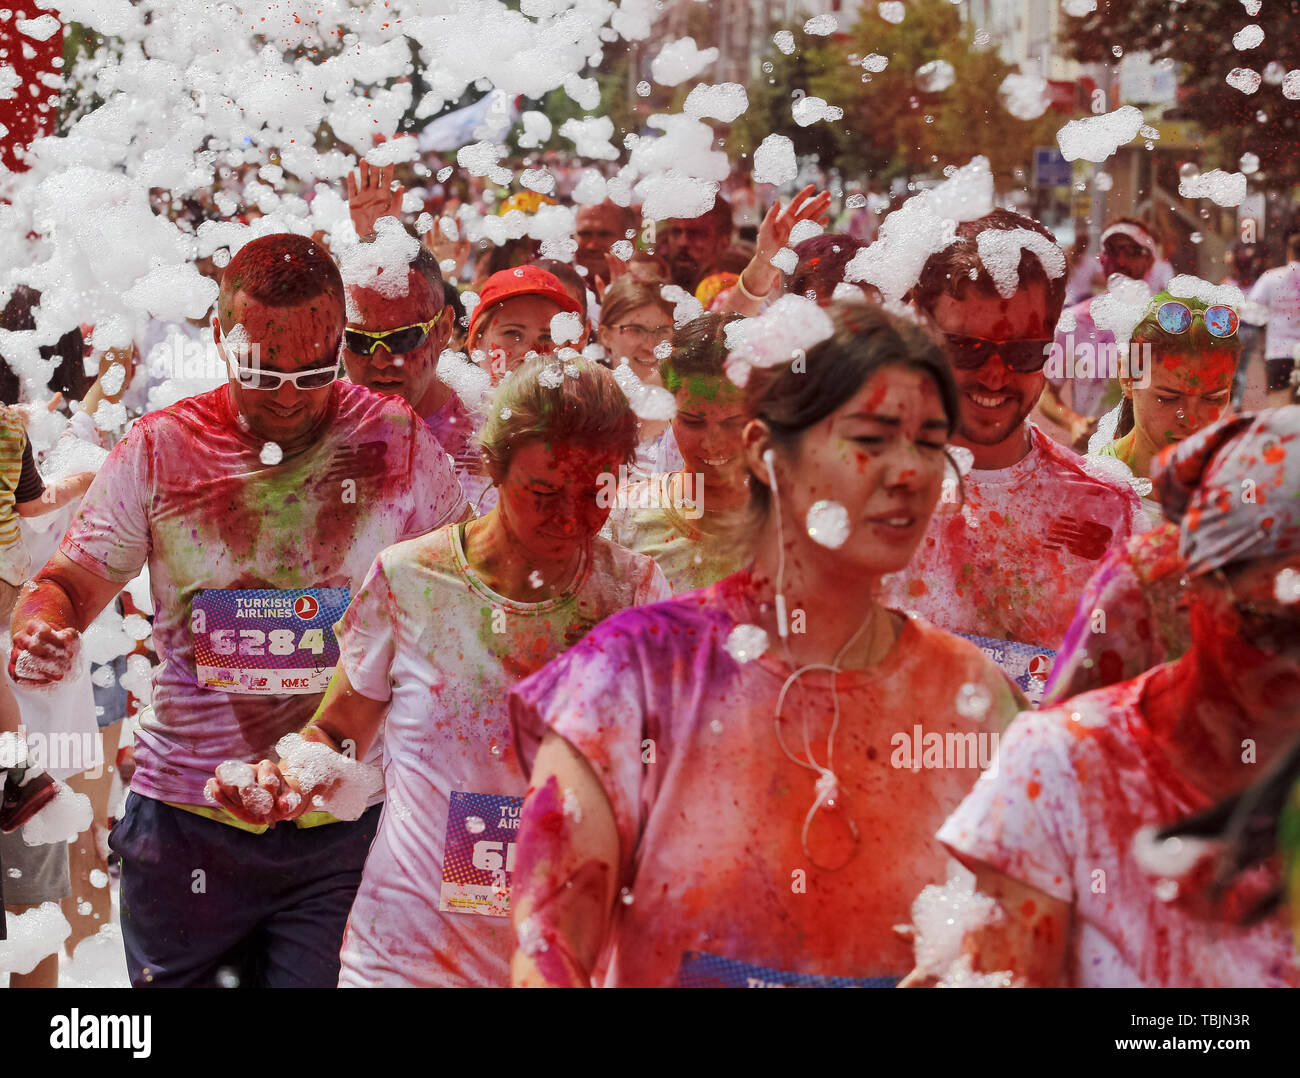 Kiev, Ukraine. 2nd June, 2019. Participants take part in the ''Kyiv Color Run'' in Kiev, Ukraine, on 2 June 2019. From the first event in the United States in January 2012 The Color Run has since spread across the globe leaving a trail of color and happy runners. Credit: Serg Glovny/ZUMA Wire/Alamy Live News - Stock Image